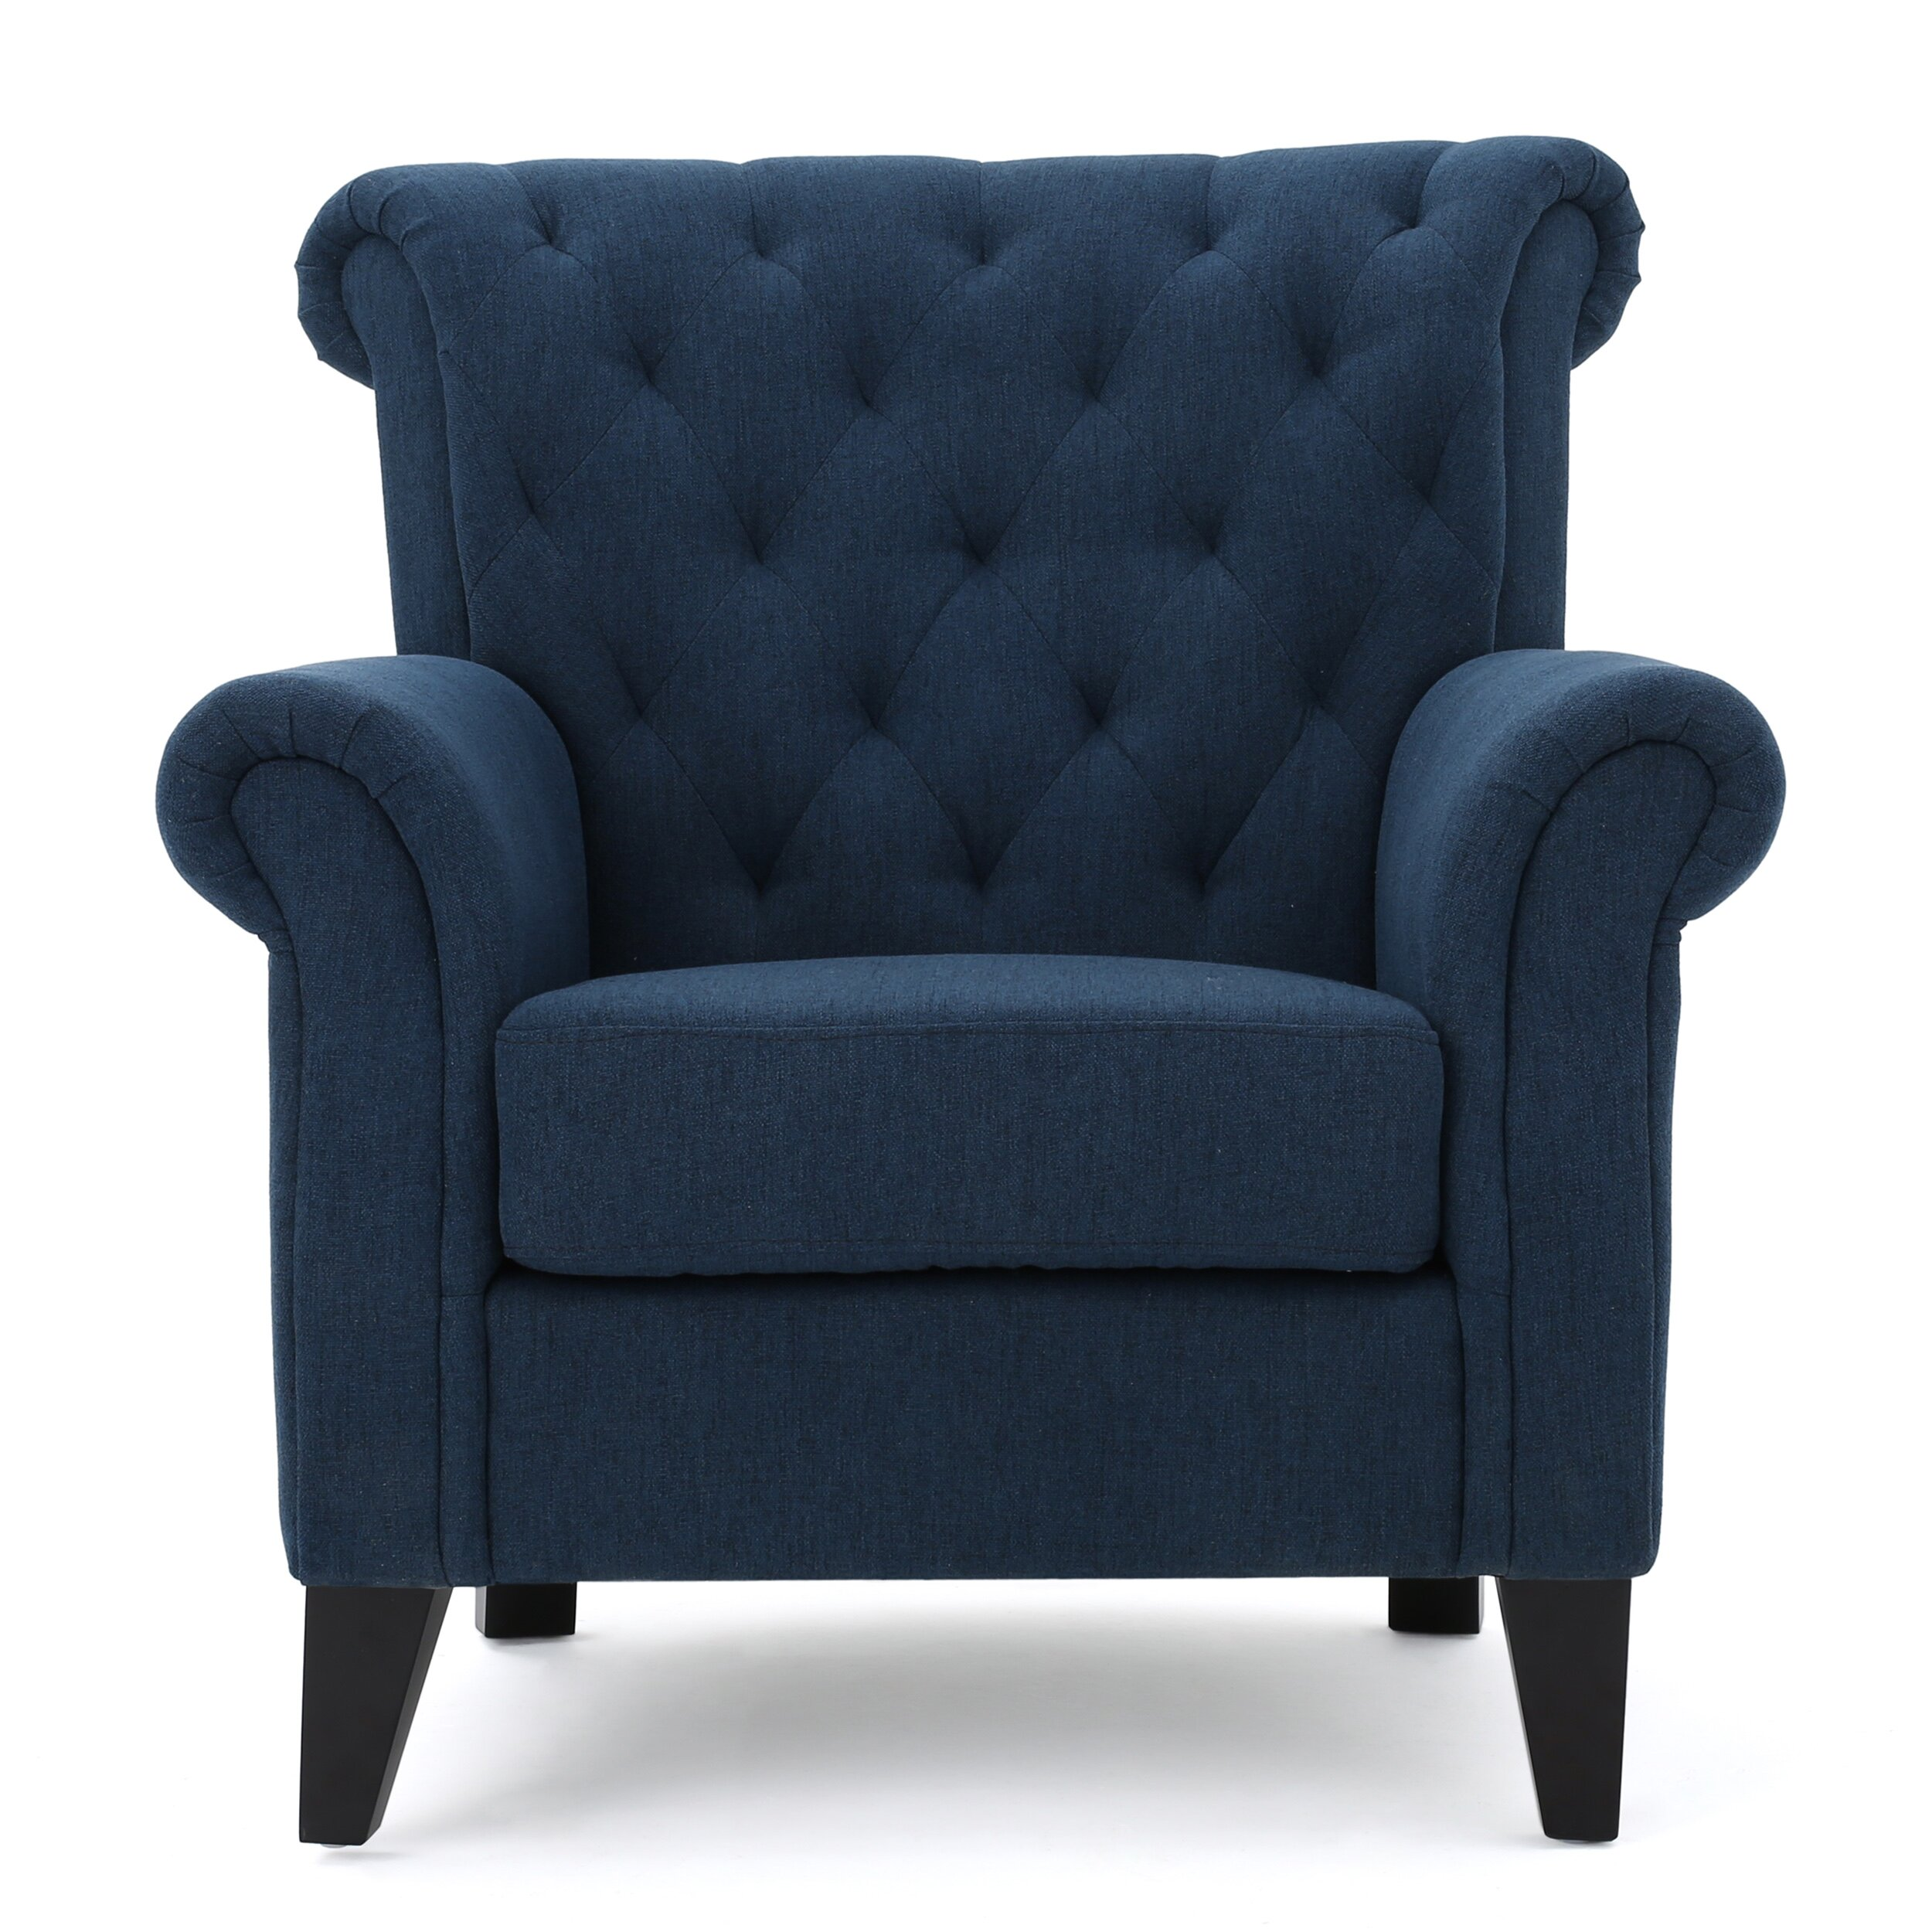 Alcott Hill Jaymee Tufted Upholstered Arm Chair Amp Reviews